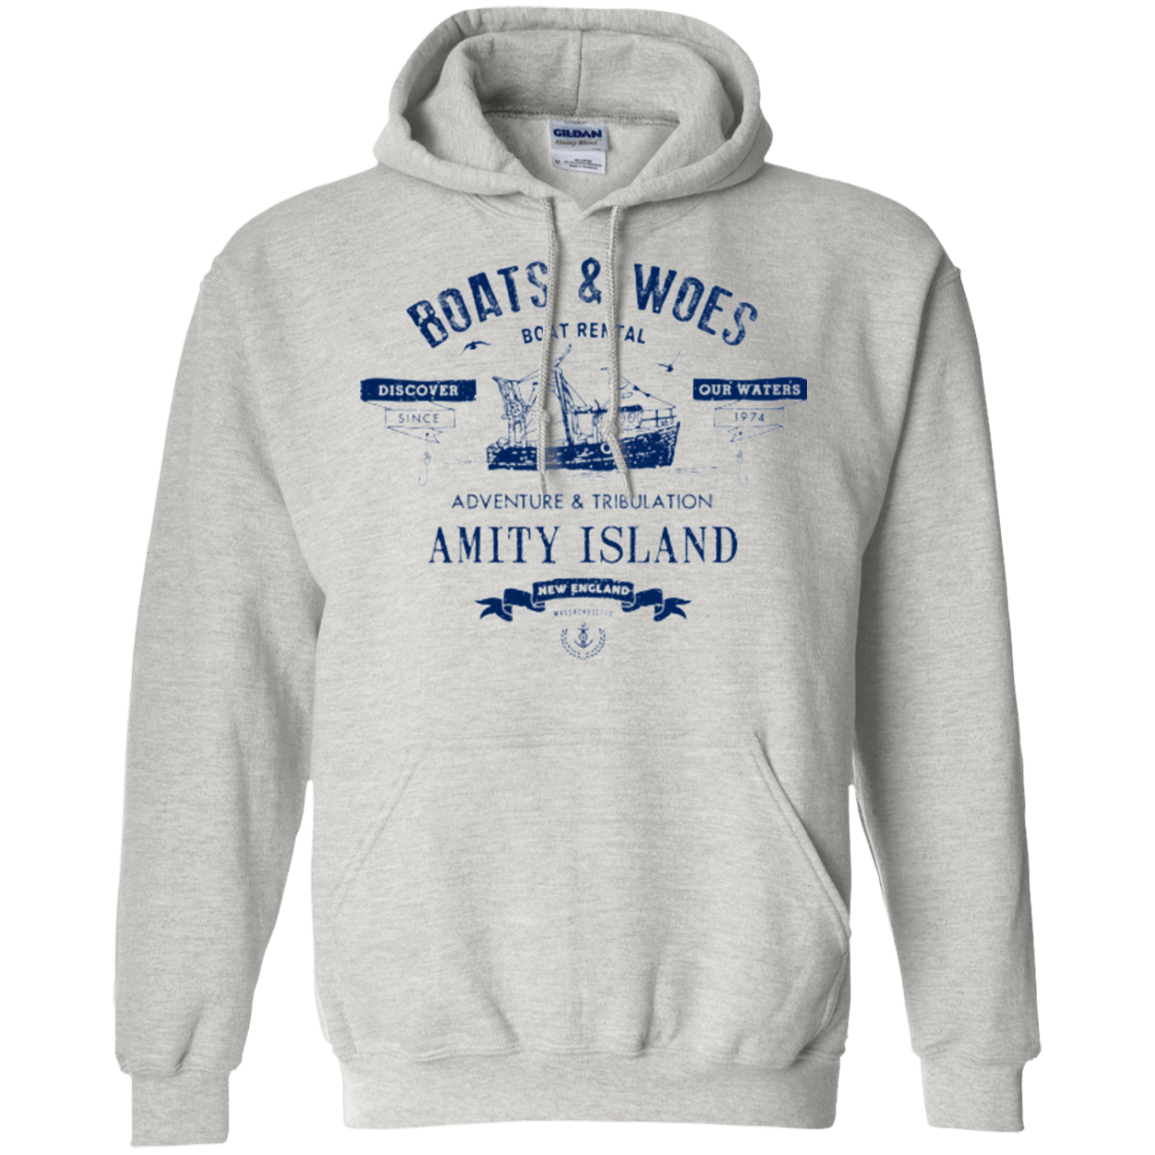 BOATS & WOES Pullover Hoodie